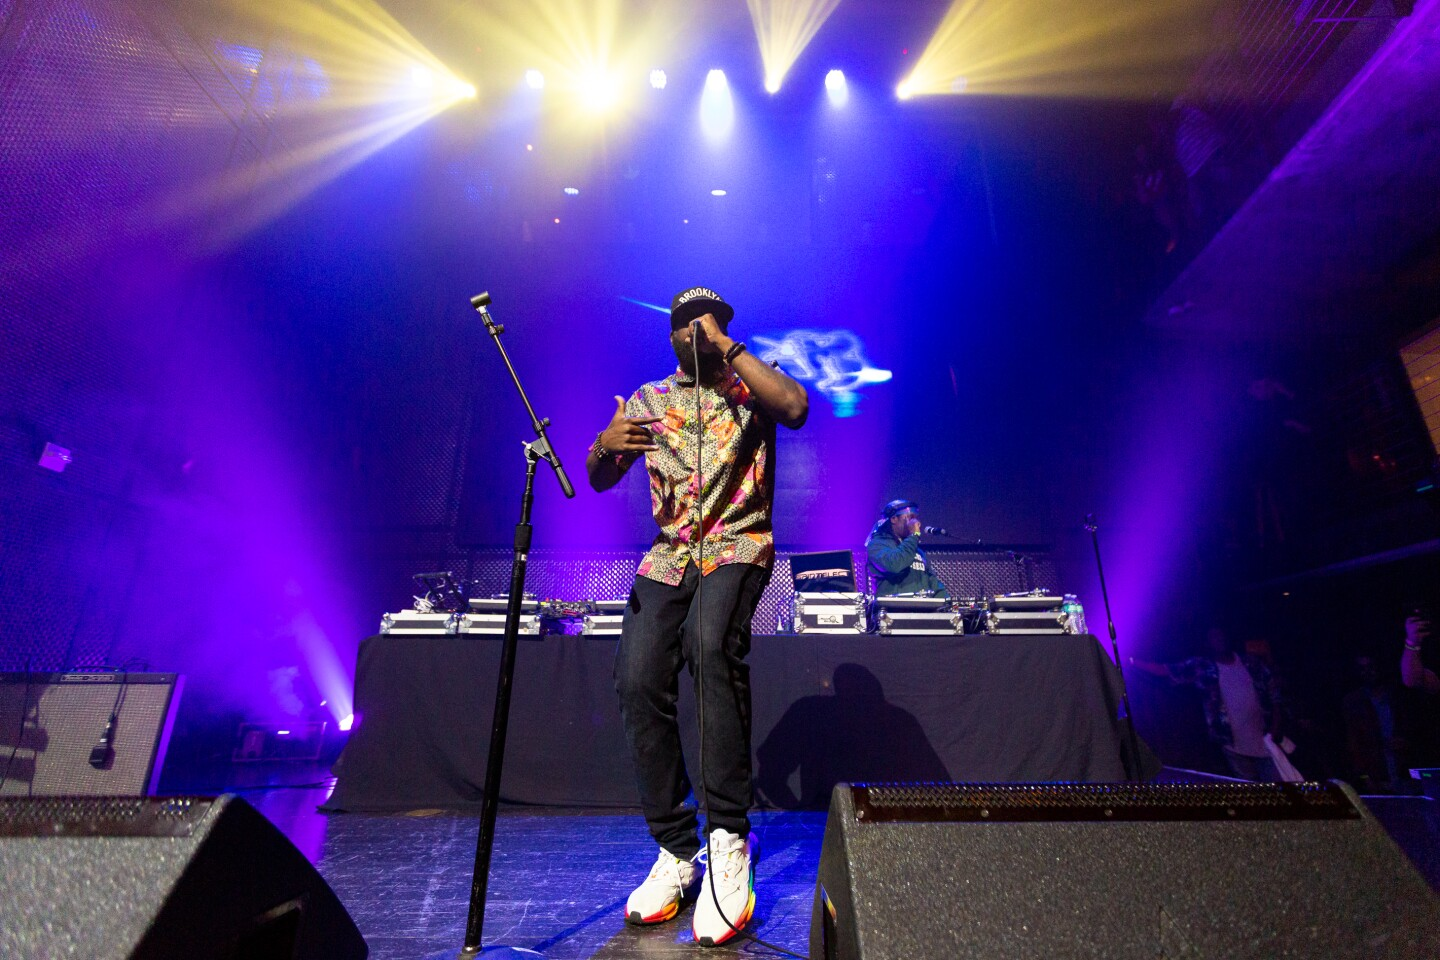 Conscious hip-hop rapper put on an amazing show at Music Box on Thursday, August 1, 2019.